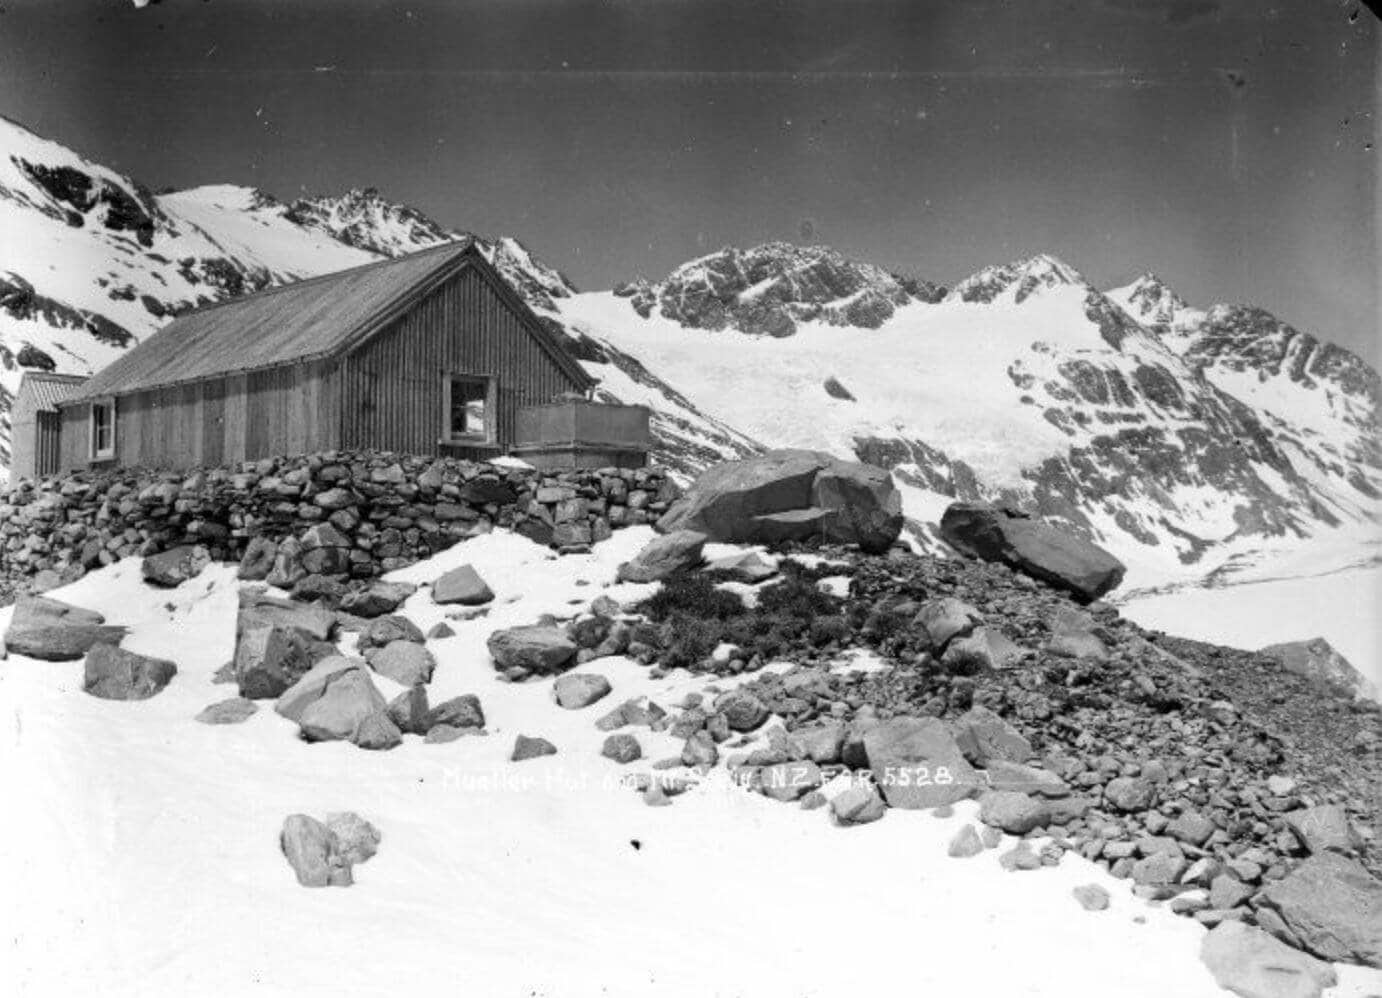 Mueller hut on Mount Sealy photographed circa 1916 by Frederick George Radcliffe